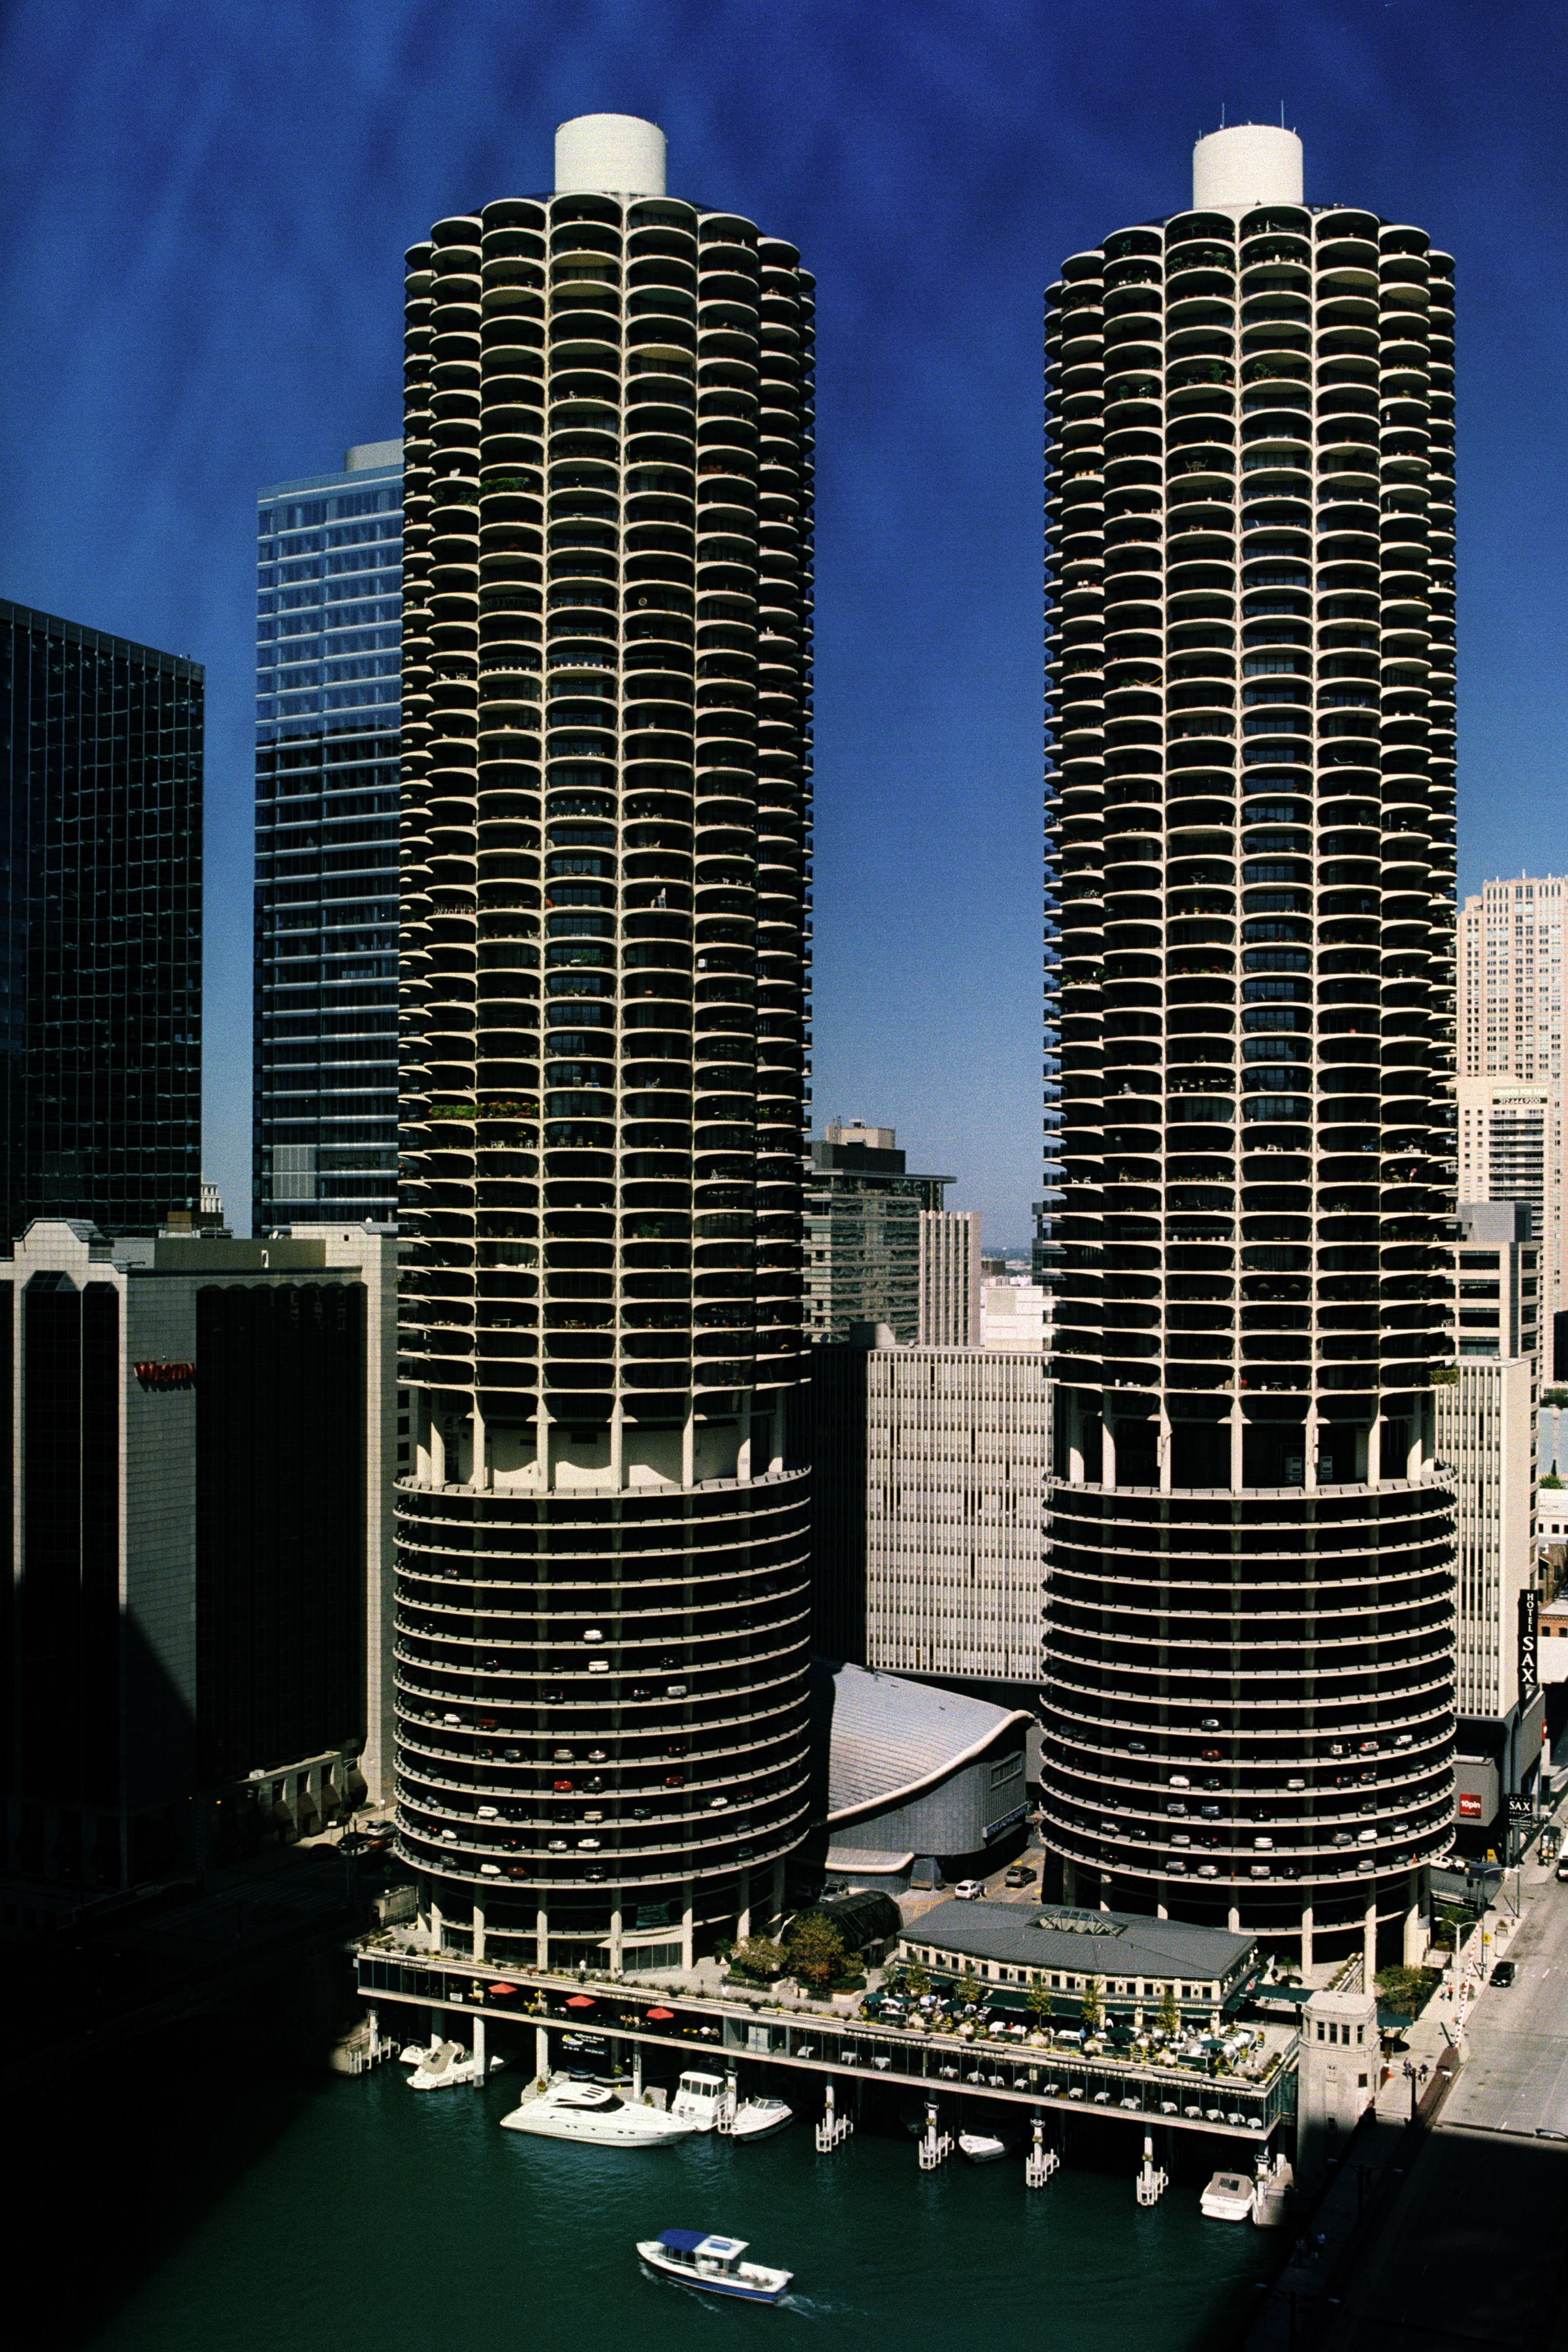 Marina Towers In Chicago Illinois Looking Like A Of Corn Cobs